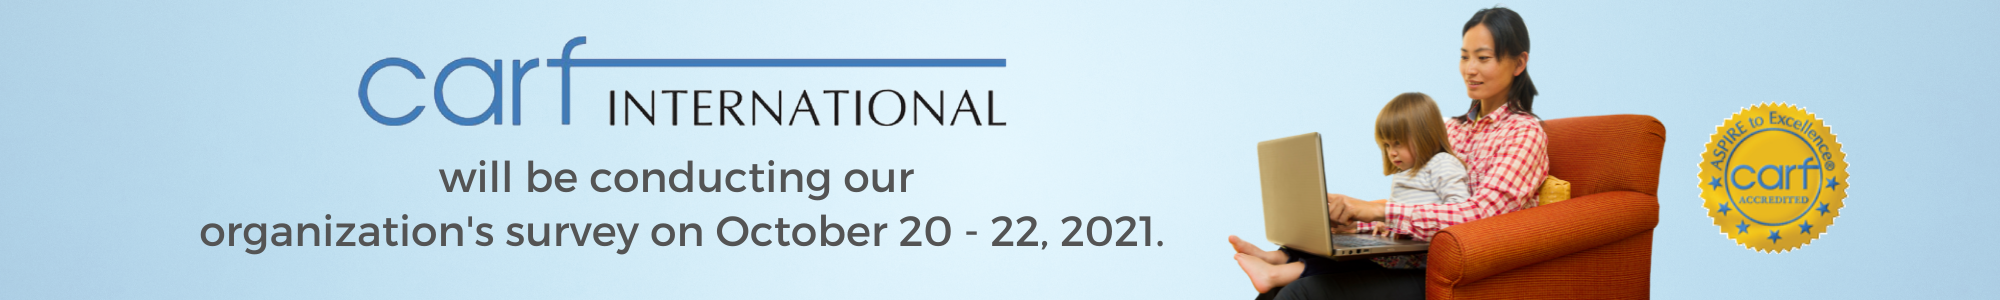 CARF International will be conducting our organization's survey on October 20 and 21, 2021.